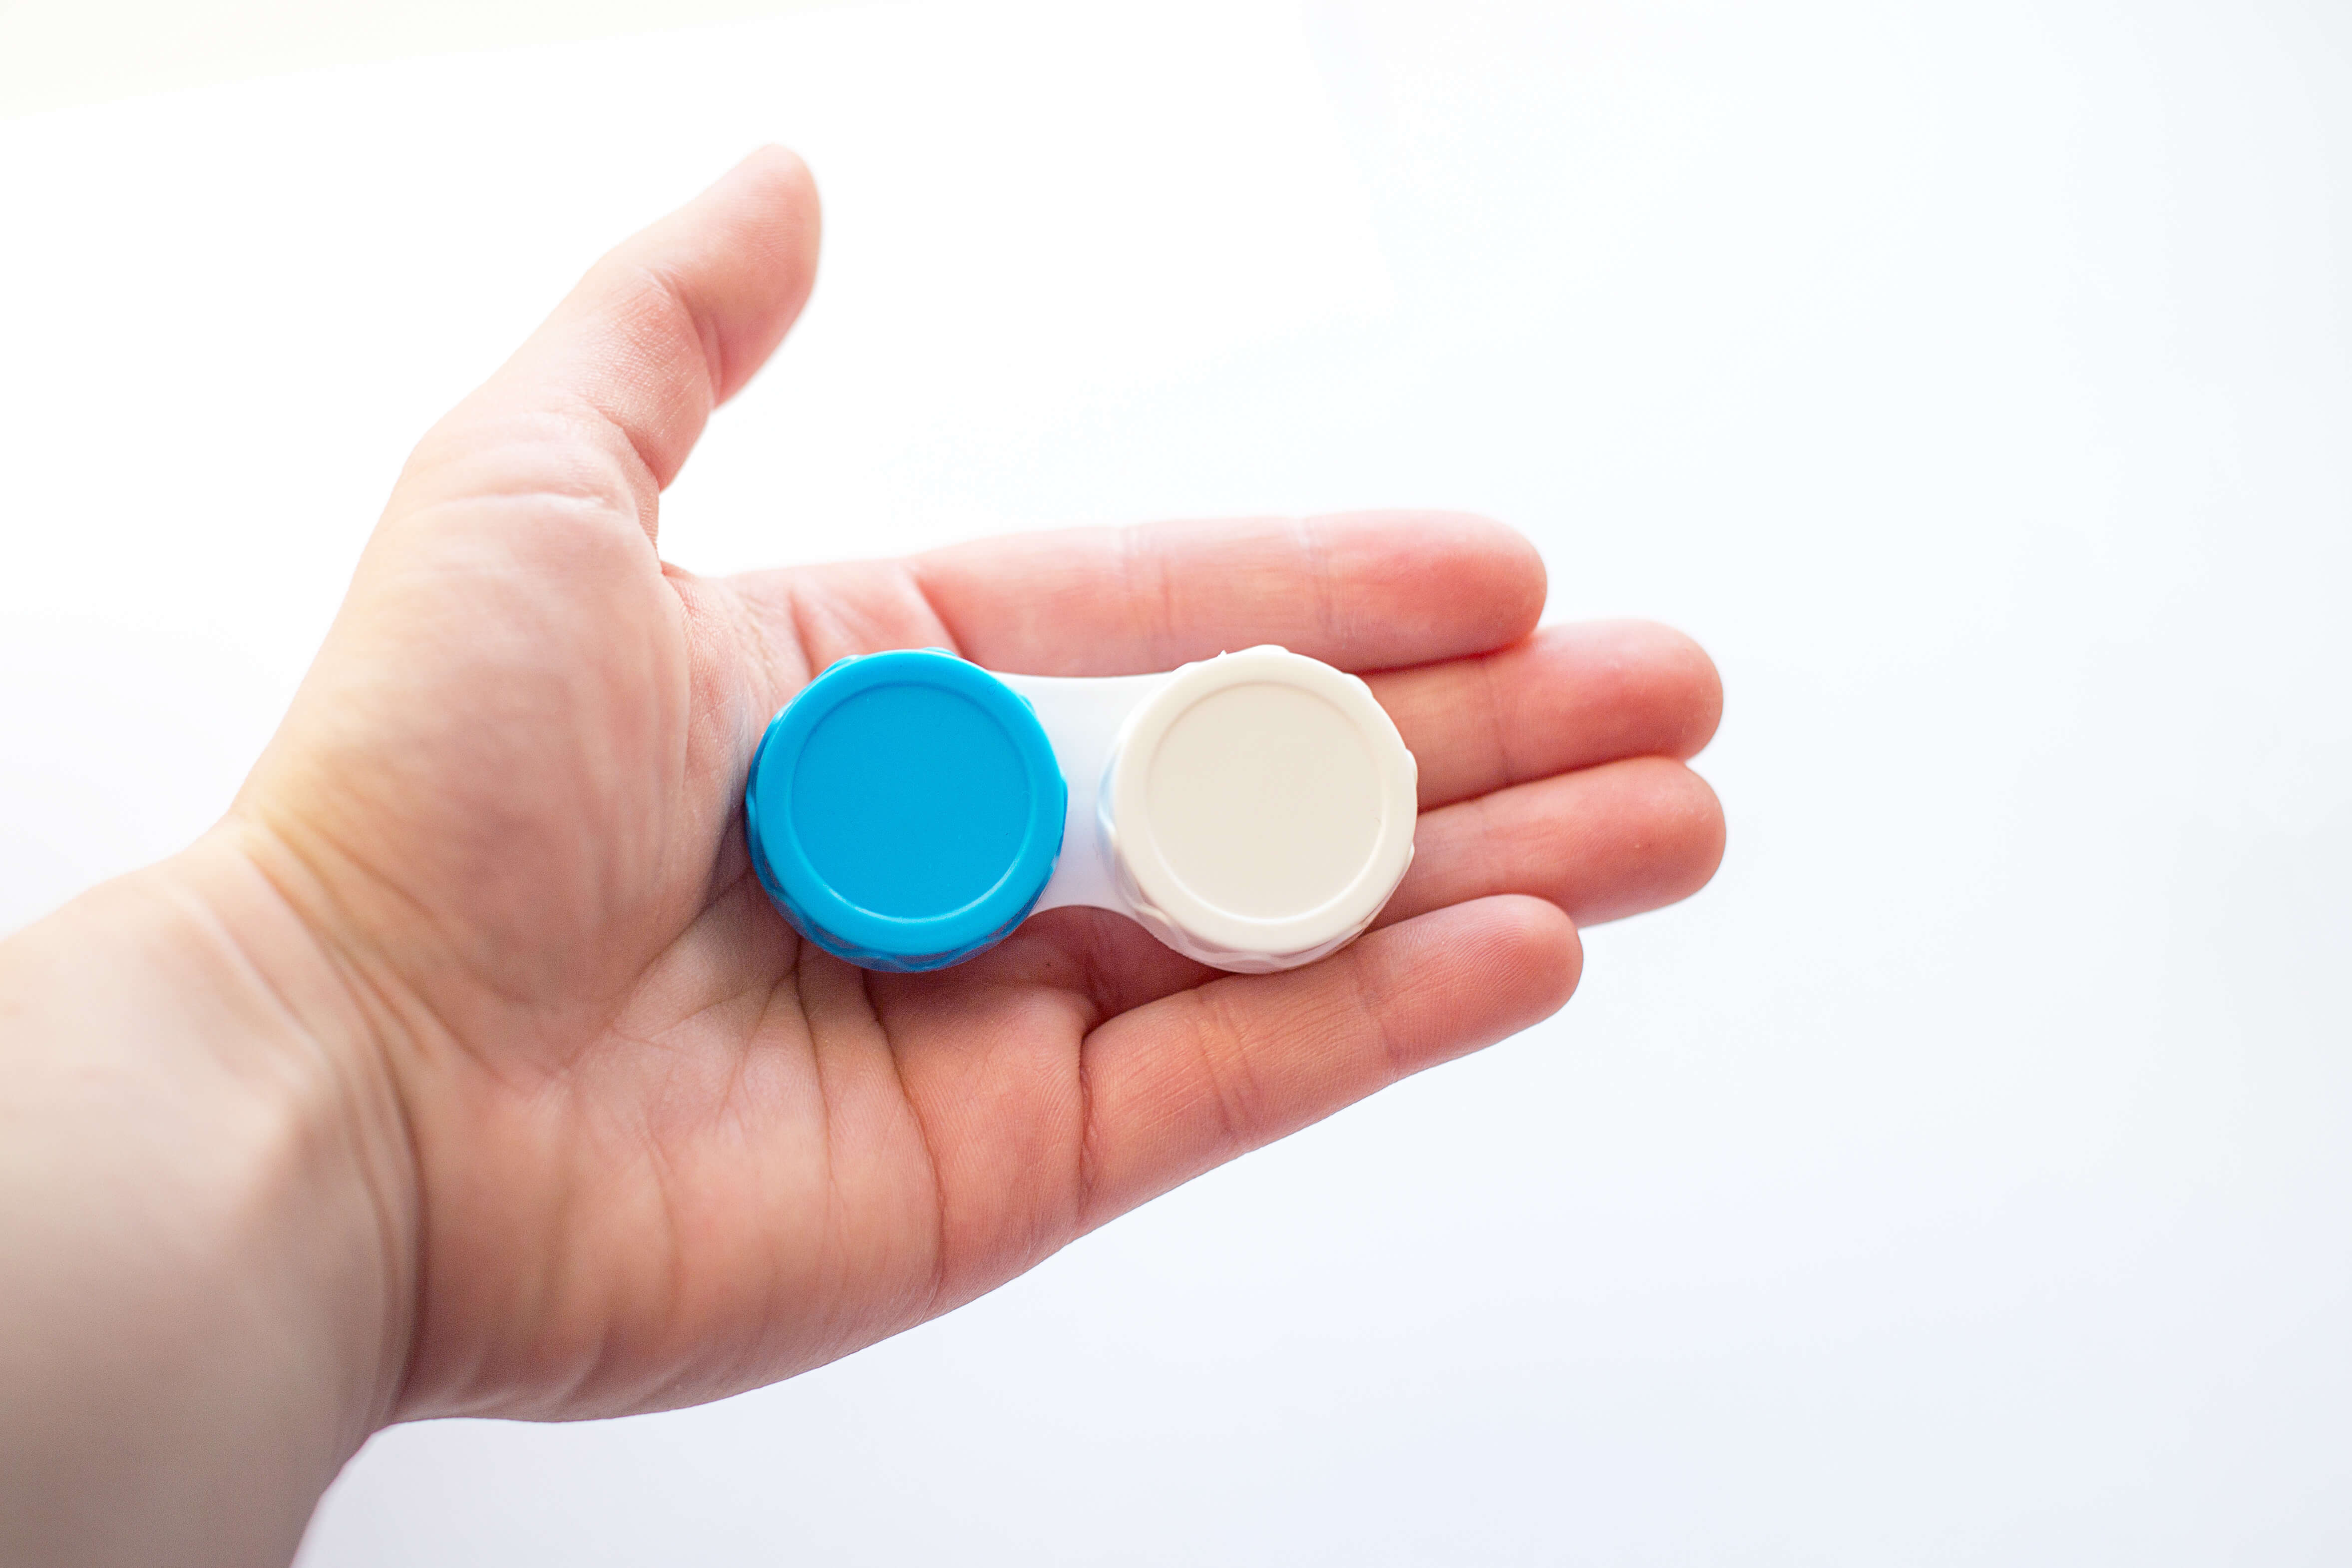 Creative Uses Of Old Contact Lens Cases